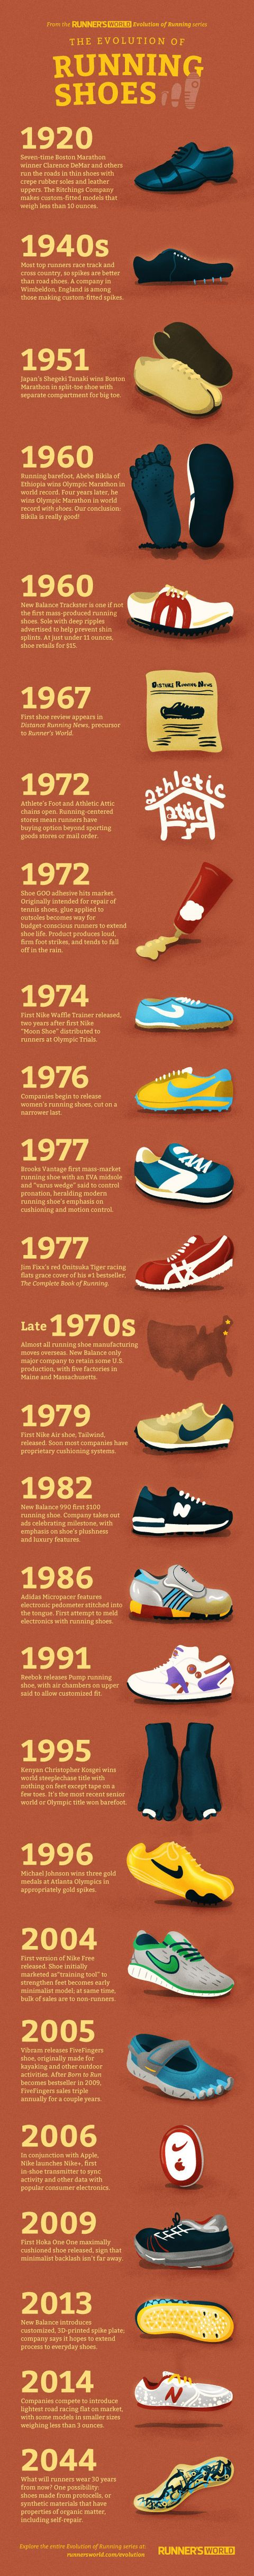 A Brief History of the Running Shoe